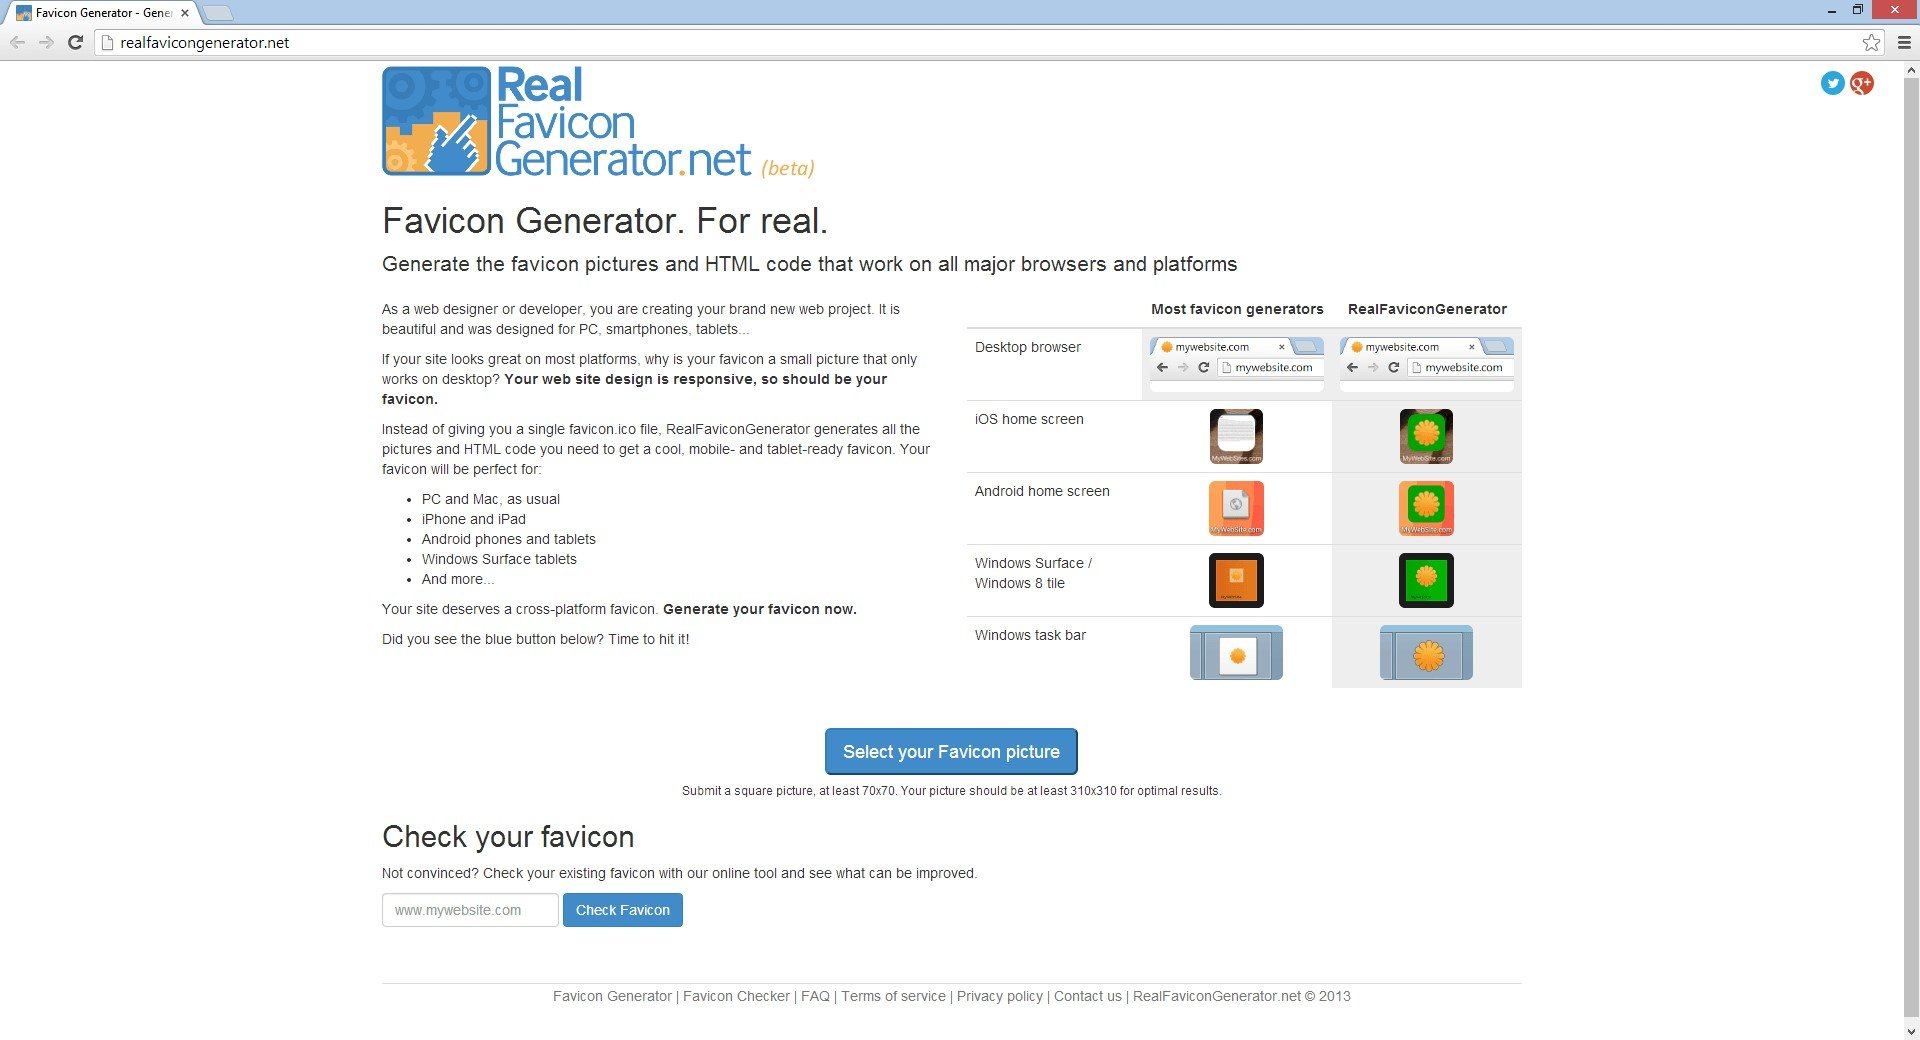 RealFaviconGenerator net Alternatives and Similar Websites